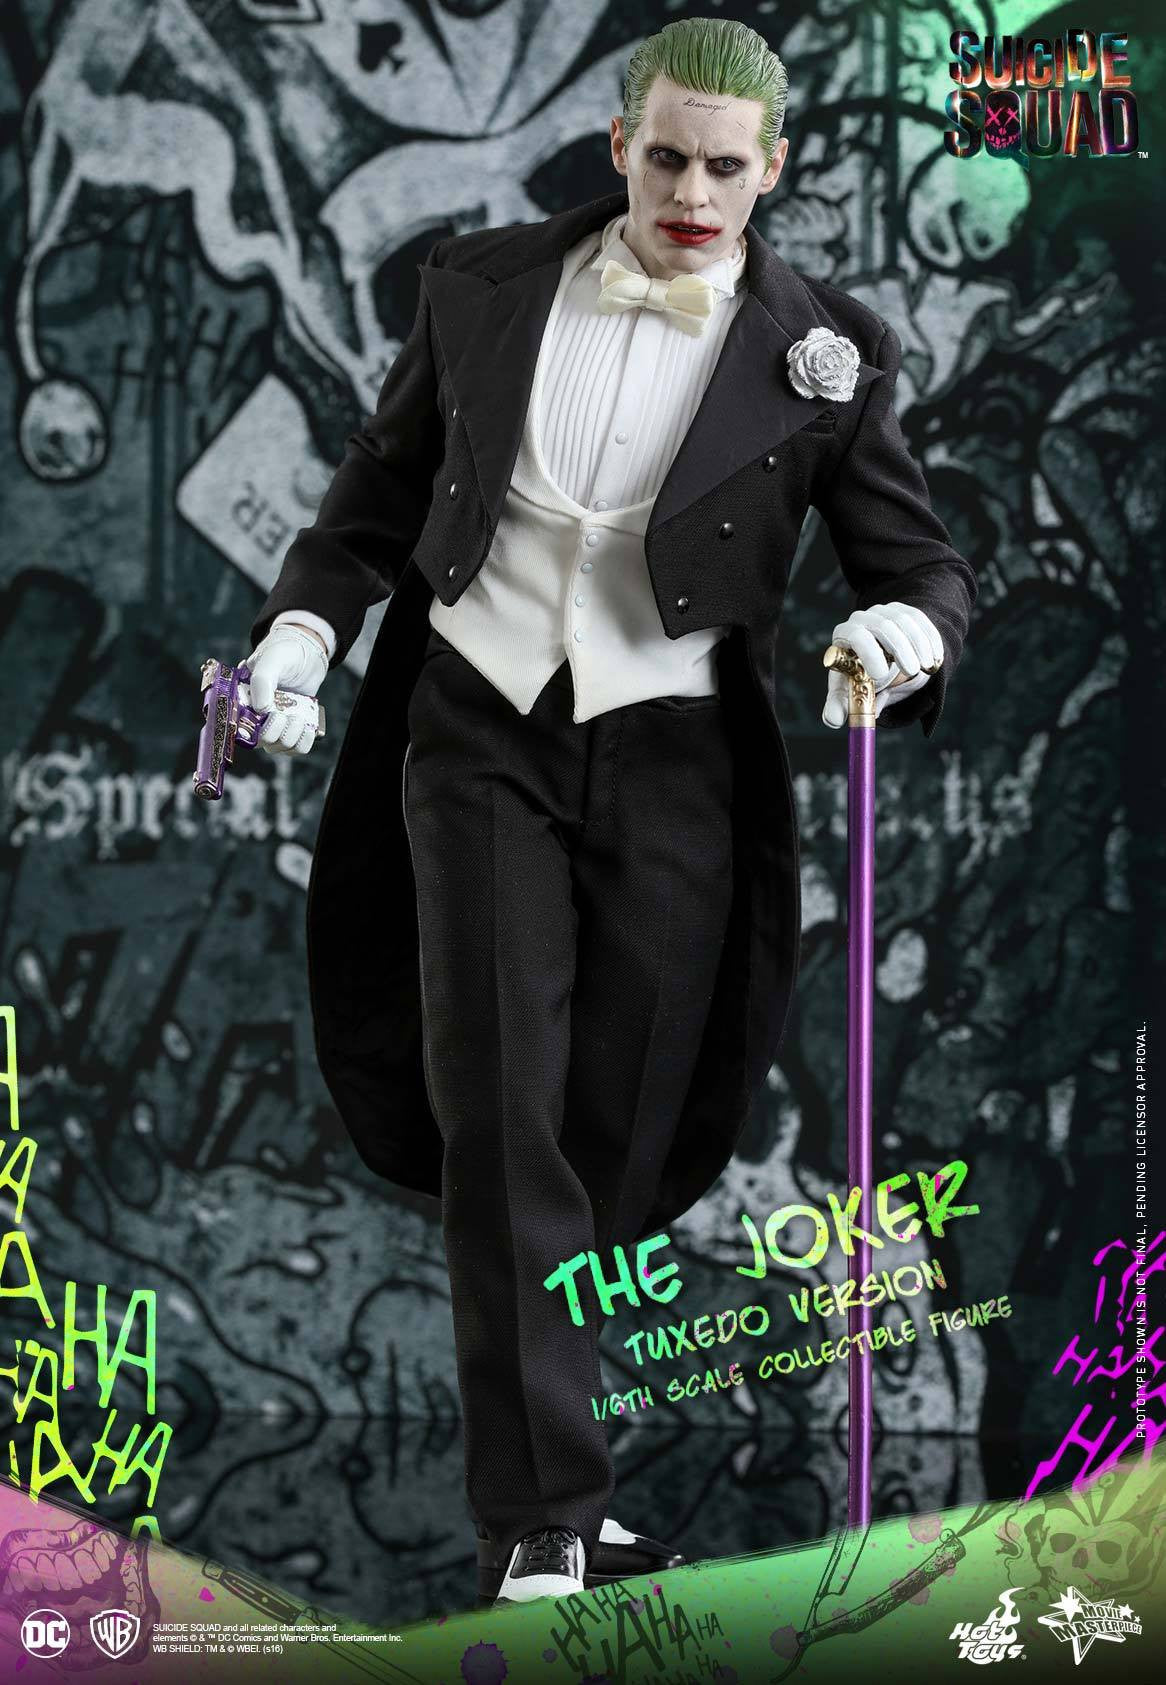 Hot Toys - MMS395 - Suicide Squad - The Joker (Tuxedo Version) - Marvelous Toys - 1